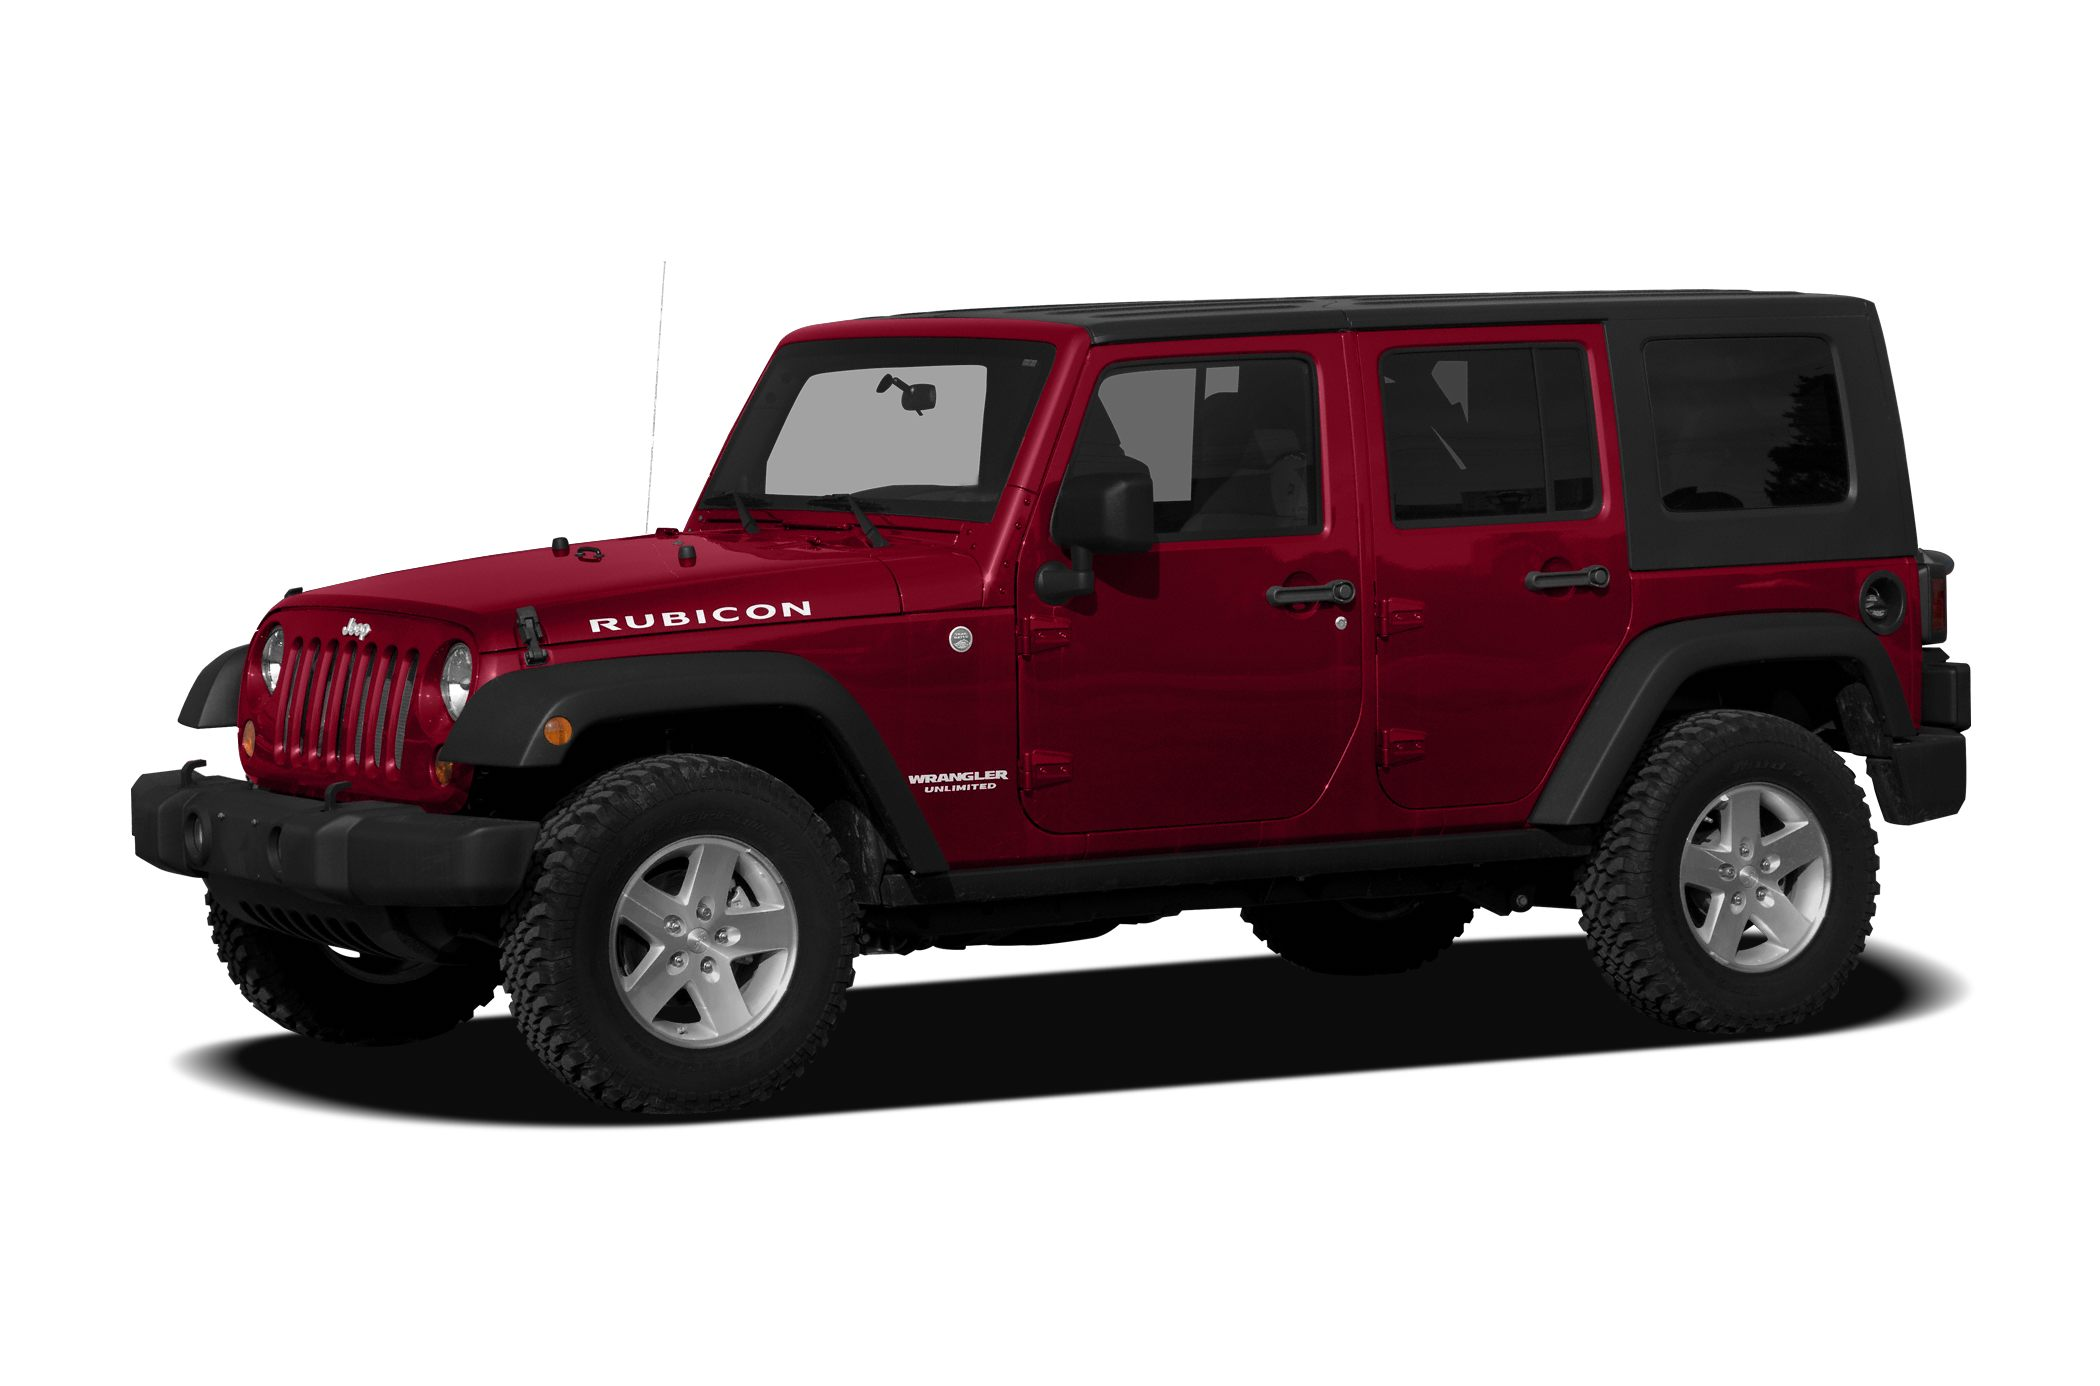 2009 Jeep Wrangler Unlimited Rubicon 4 Wheel Drive Switch to David Stanley Norman Chrysler Jeep D